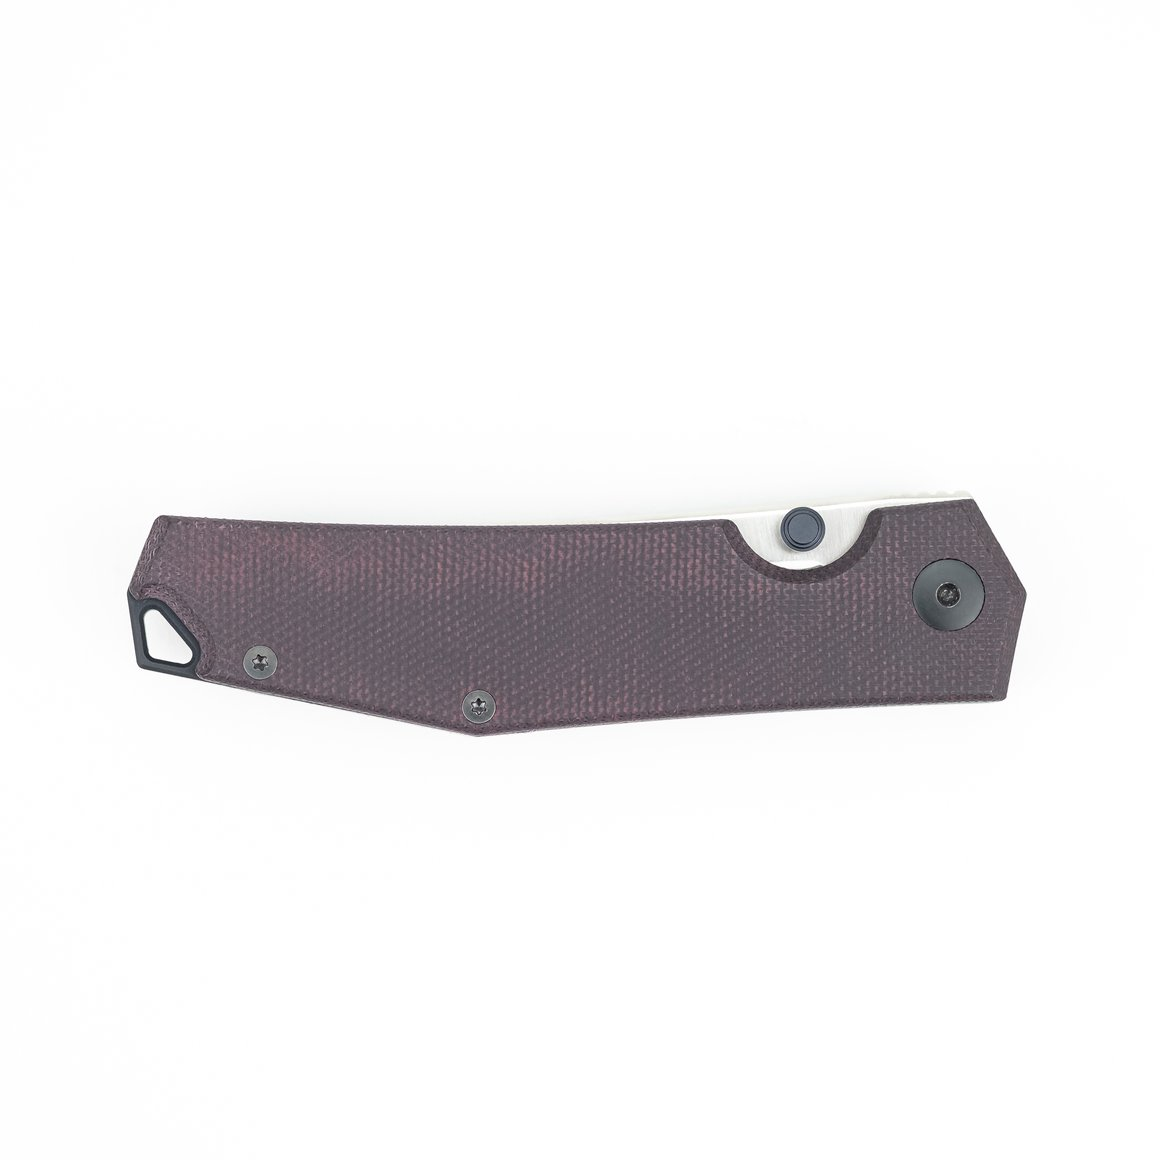 Giantmouse Knives ace clyde burgundy canvas micarta model